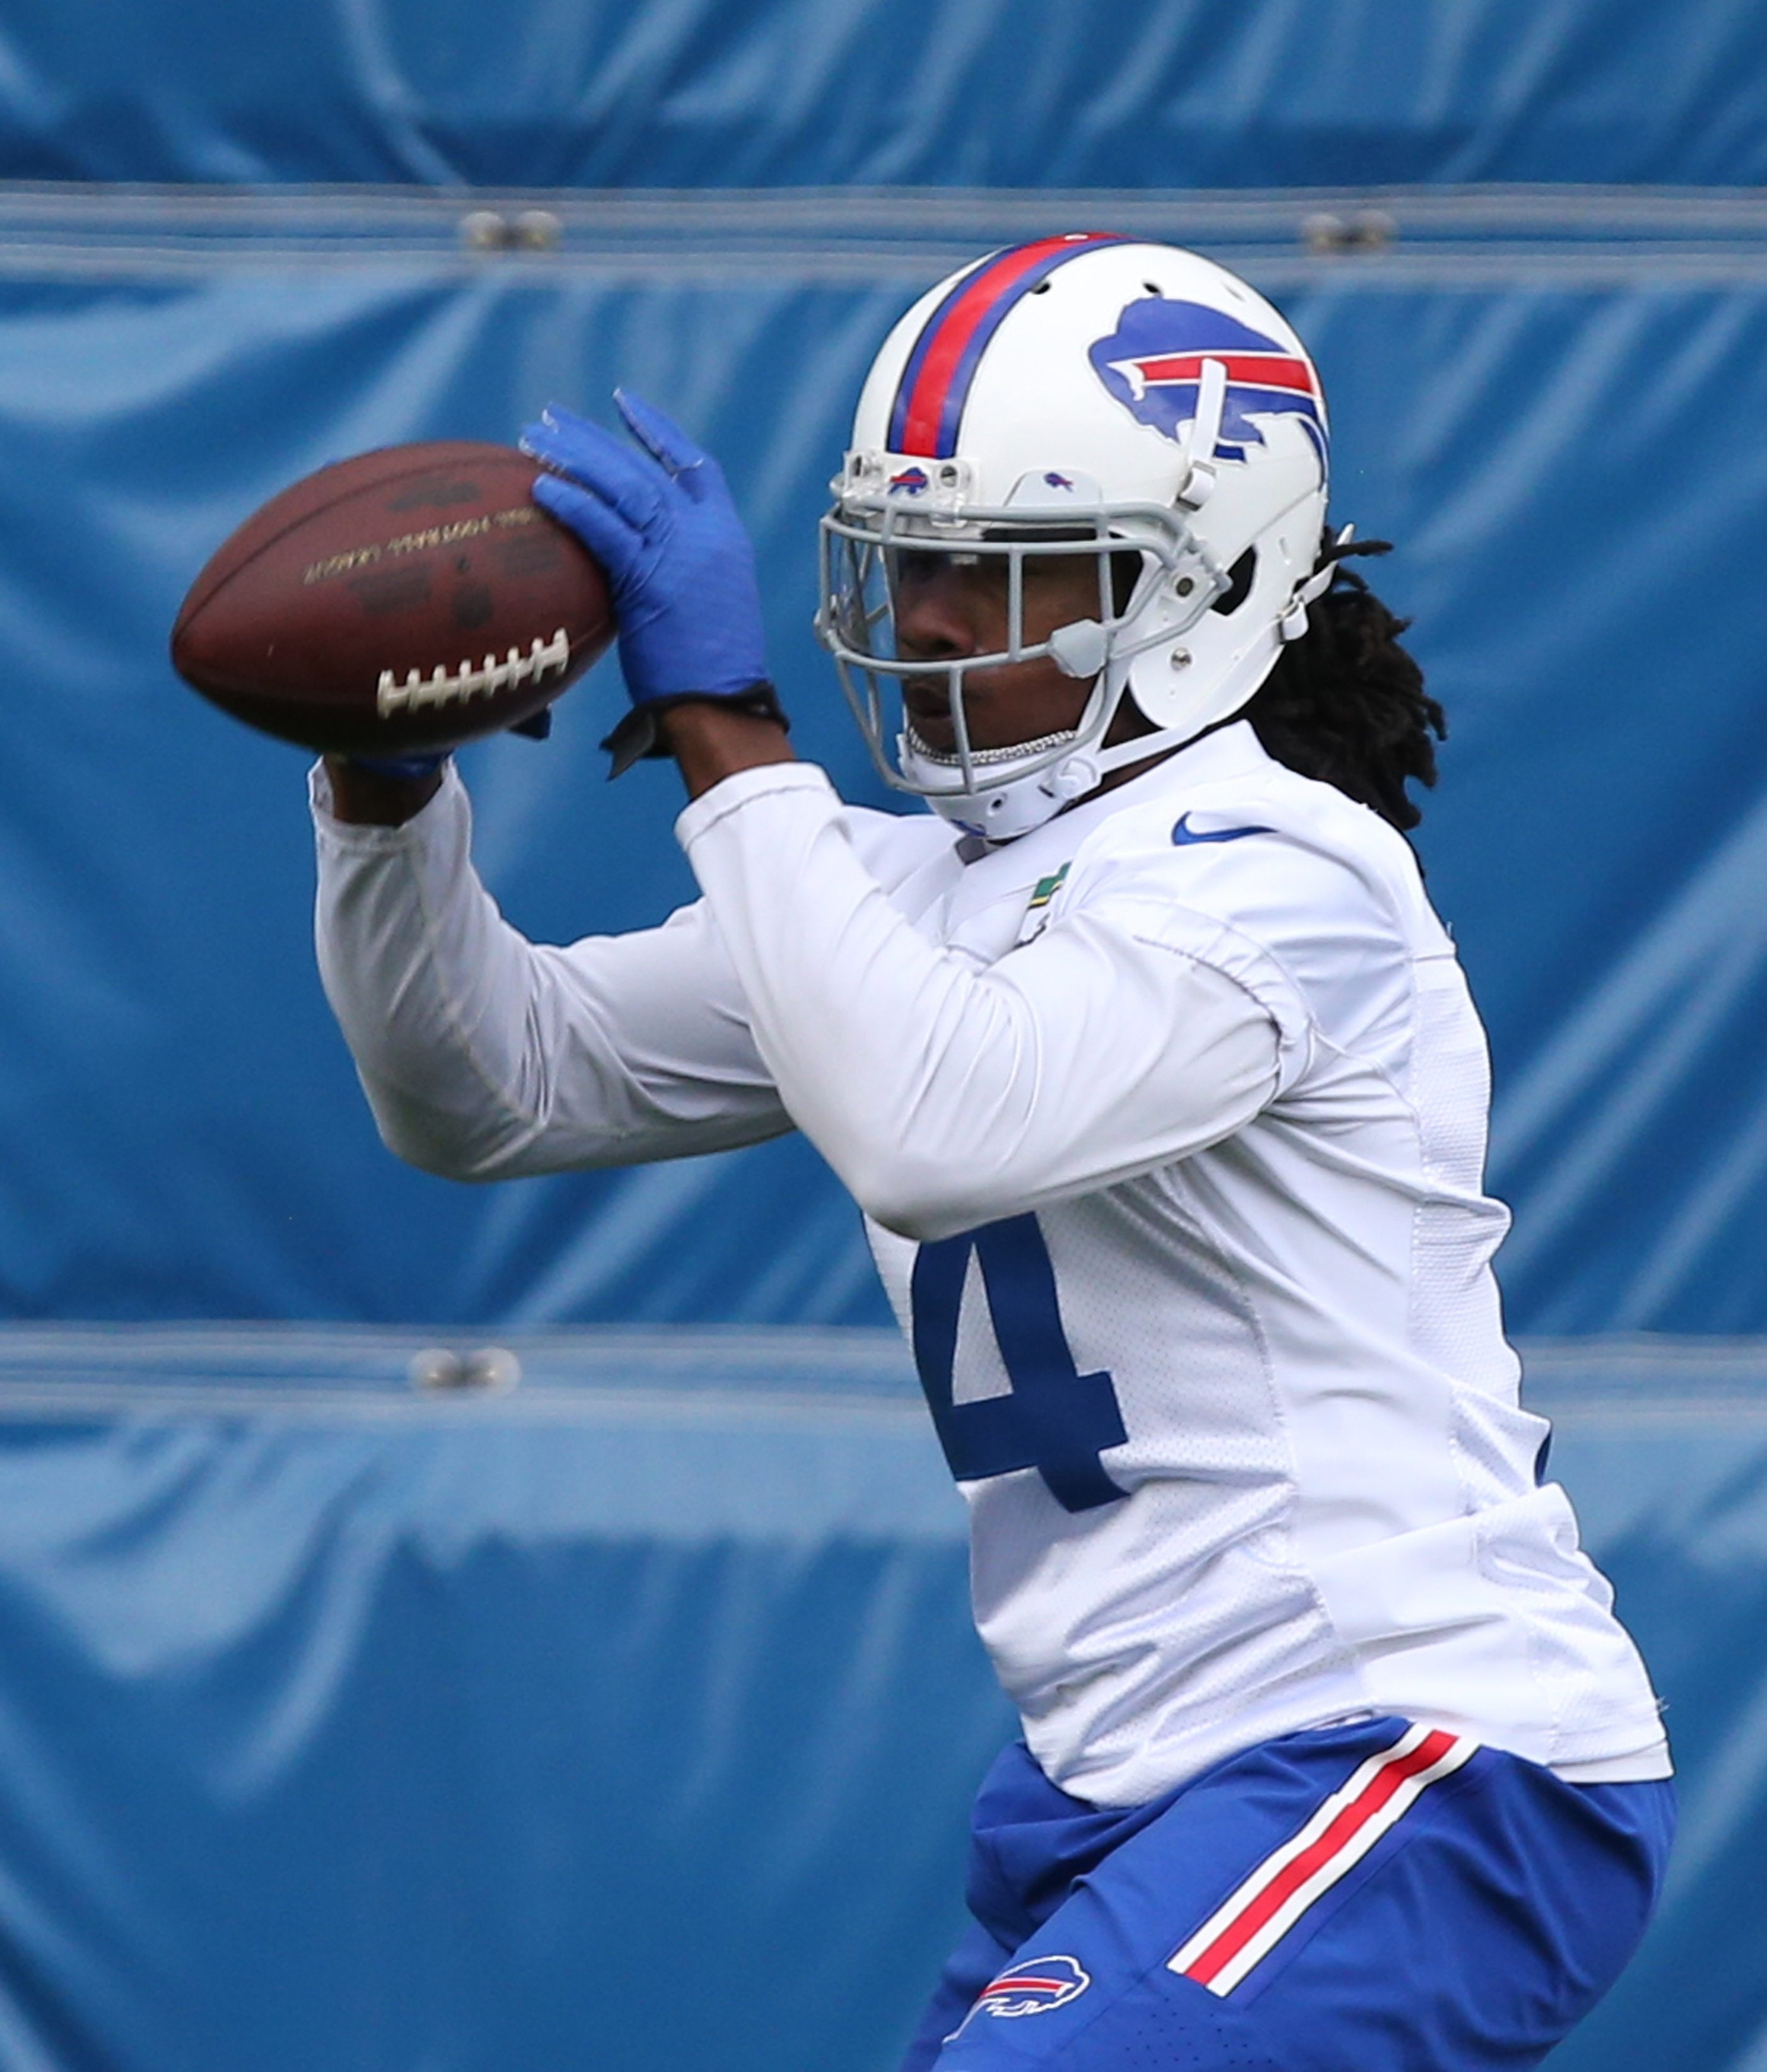 Sammy Watkins has recovered from hip surgery and should be the focal point of the Bills' passing game, which should enable him to have better statistics than Percy Harvin.